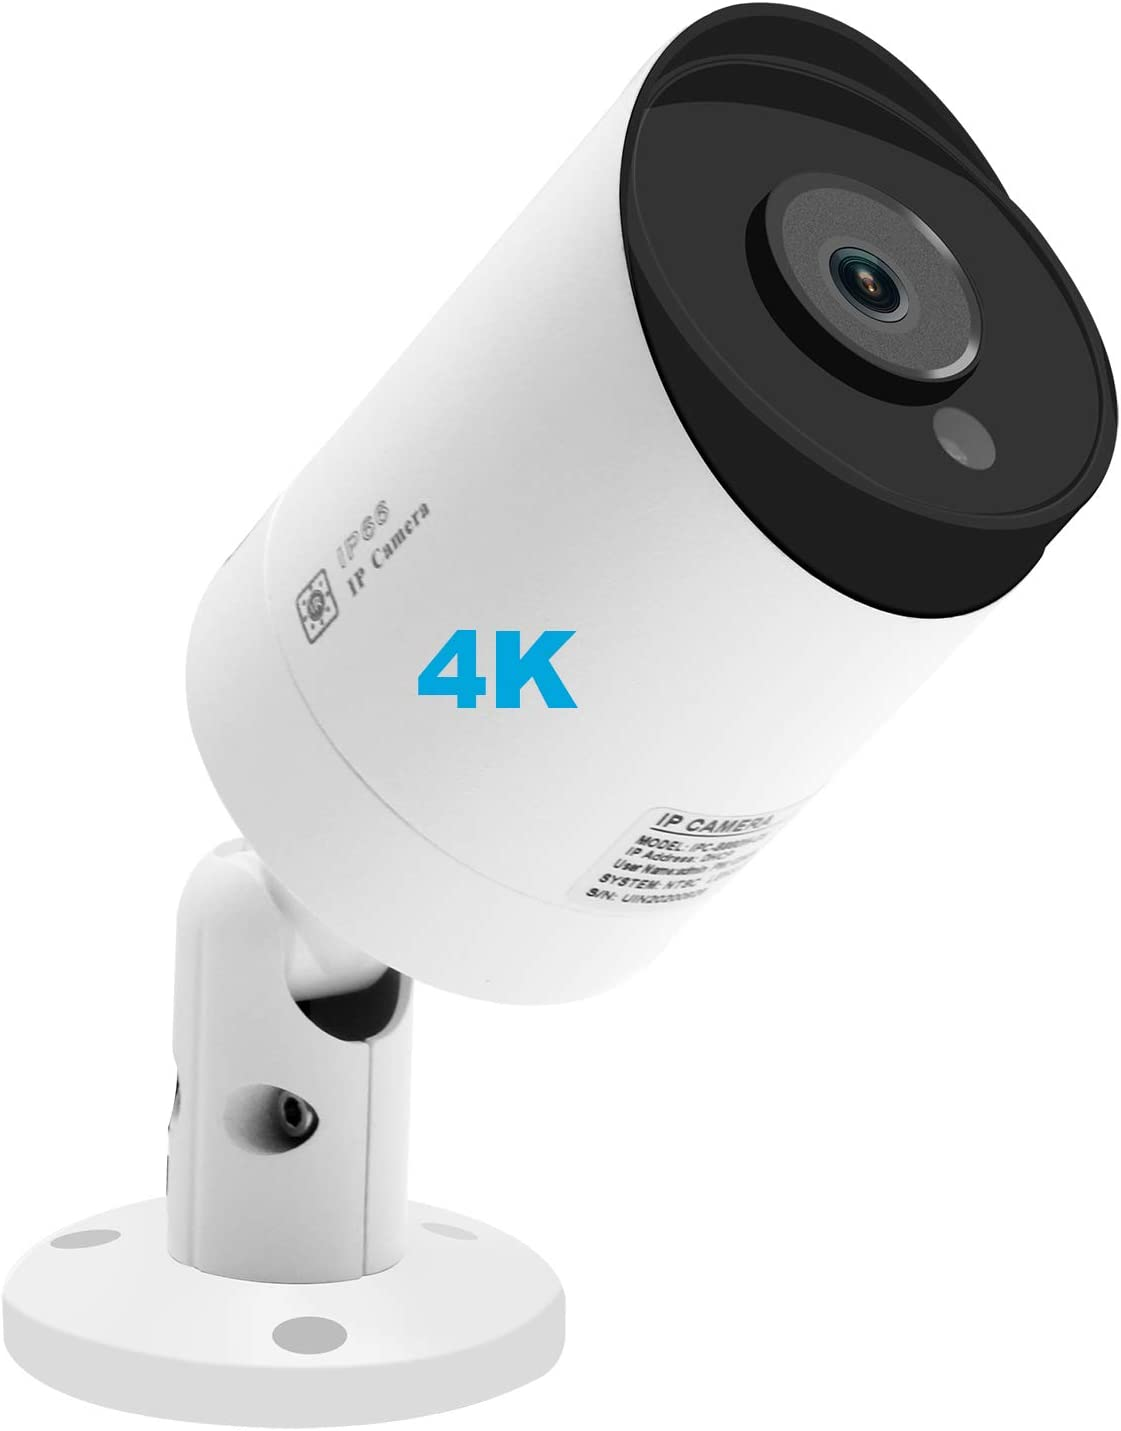 Anpviz 4K 8MP IP66 POE IP Security Bullet Camera Indoor Outdoor with Microphone, Audio, Wide Angle 2.8mm Lens,3864x2160 Megapixels UltraHD 98ft,SD Card Slot, IPC-B880WD-S